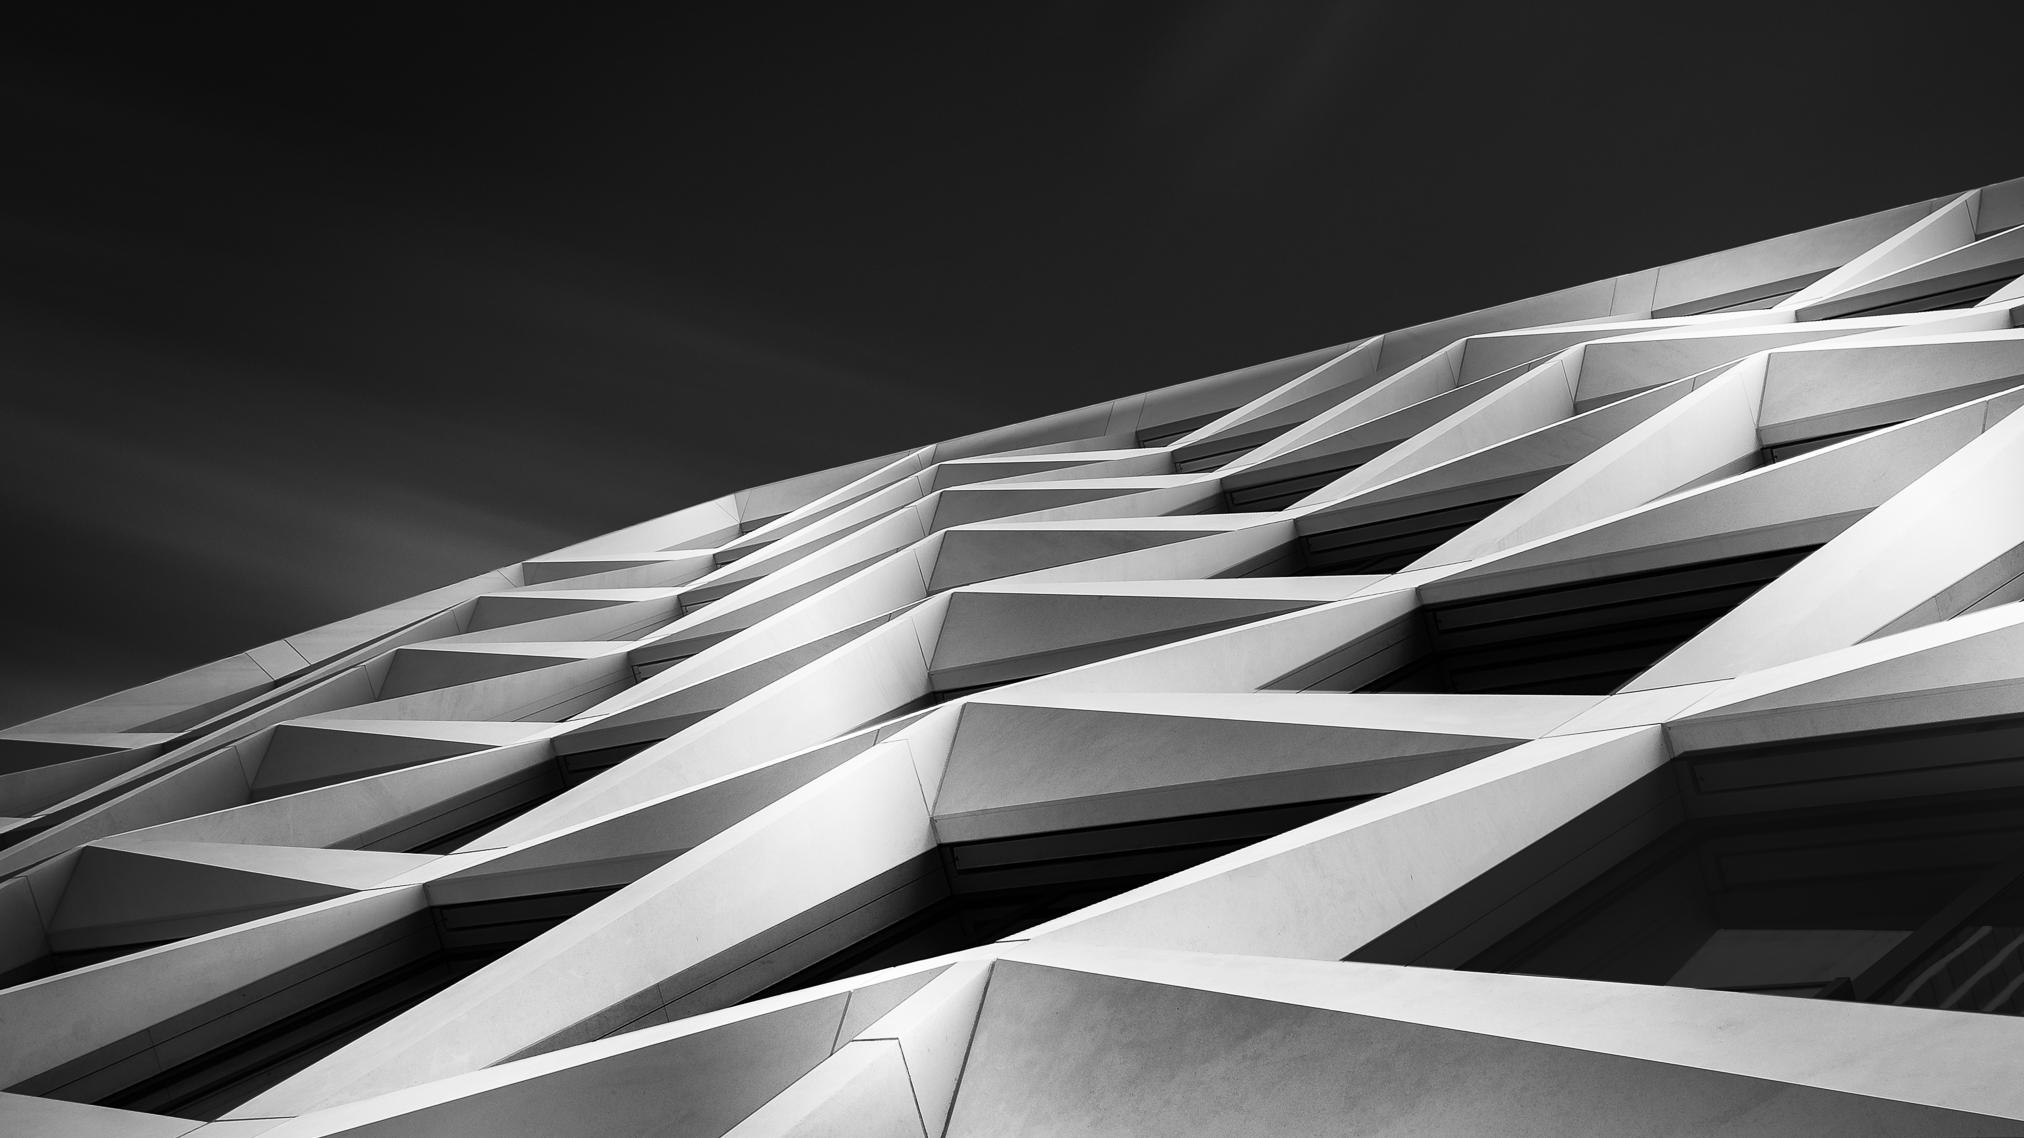 architectural photography anna laudan 1